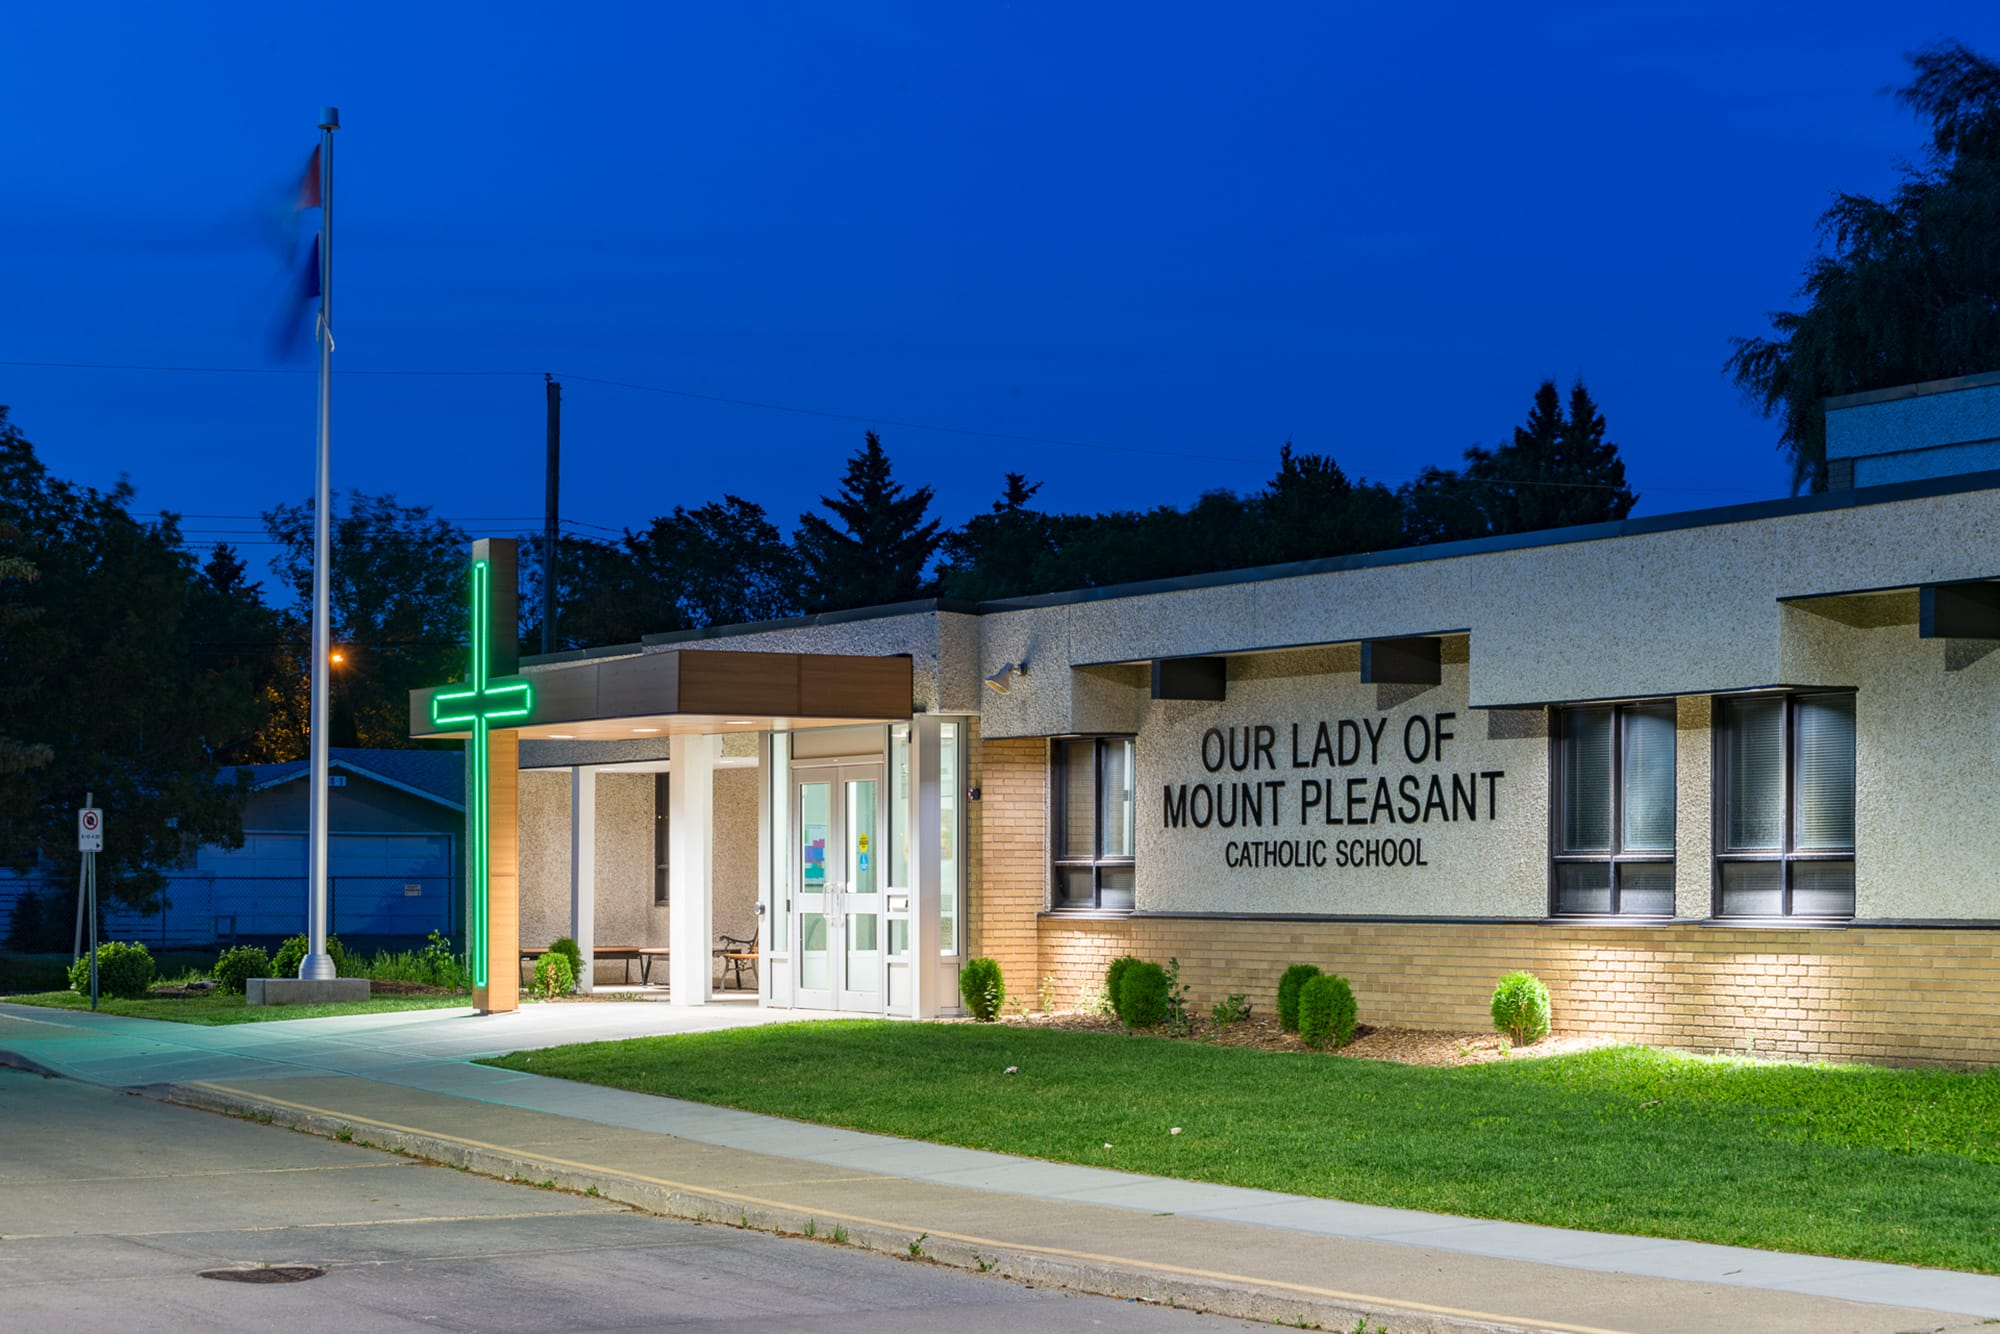 Our Lady of Mount Pleasant School exterior at night